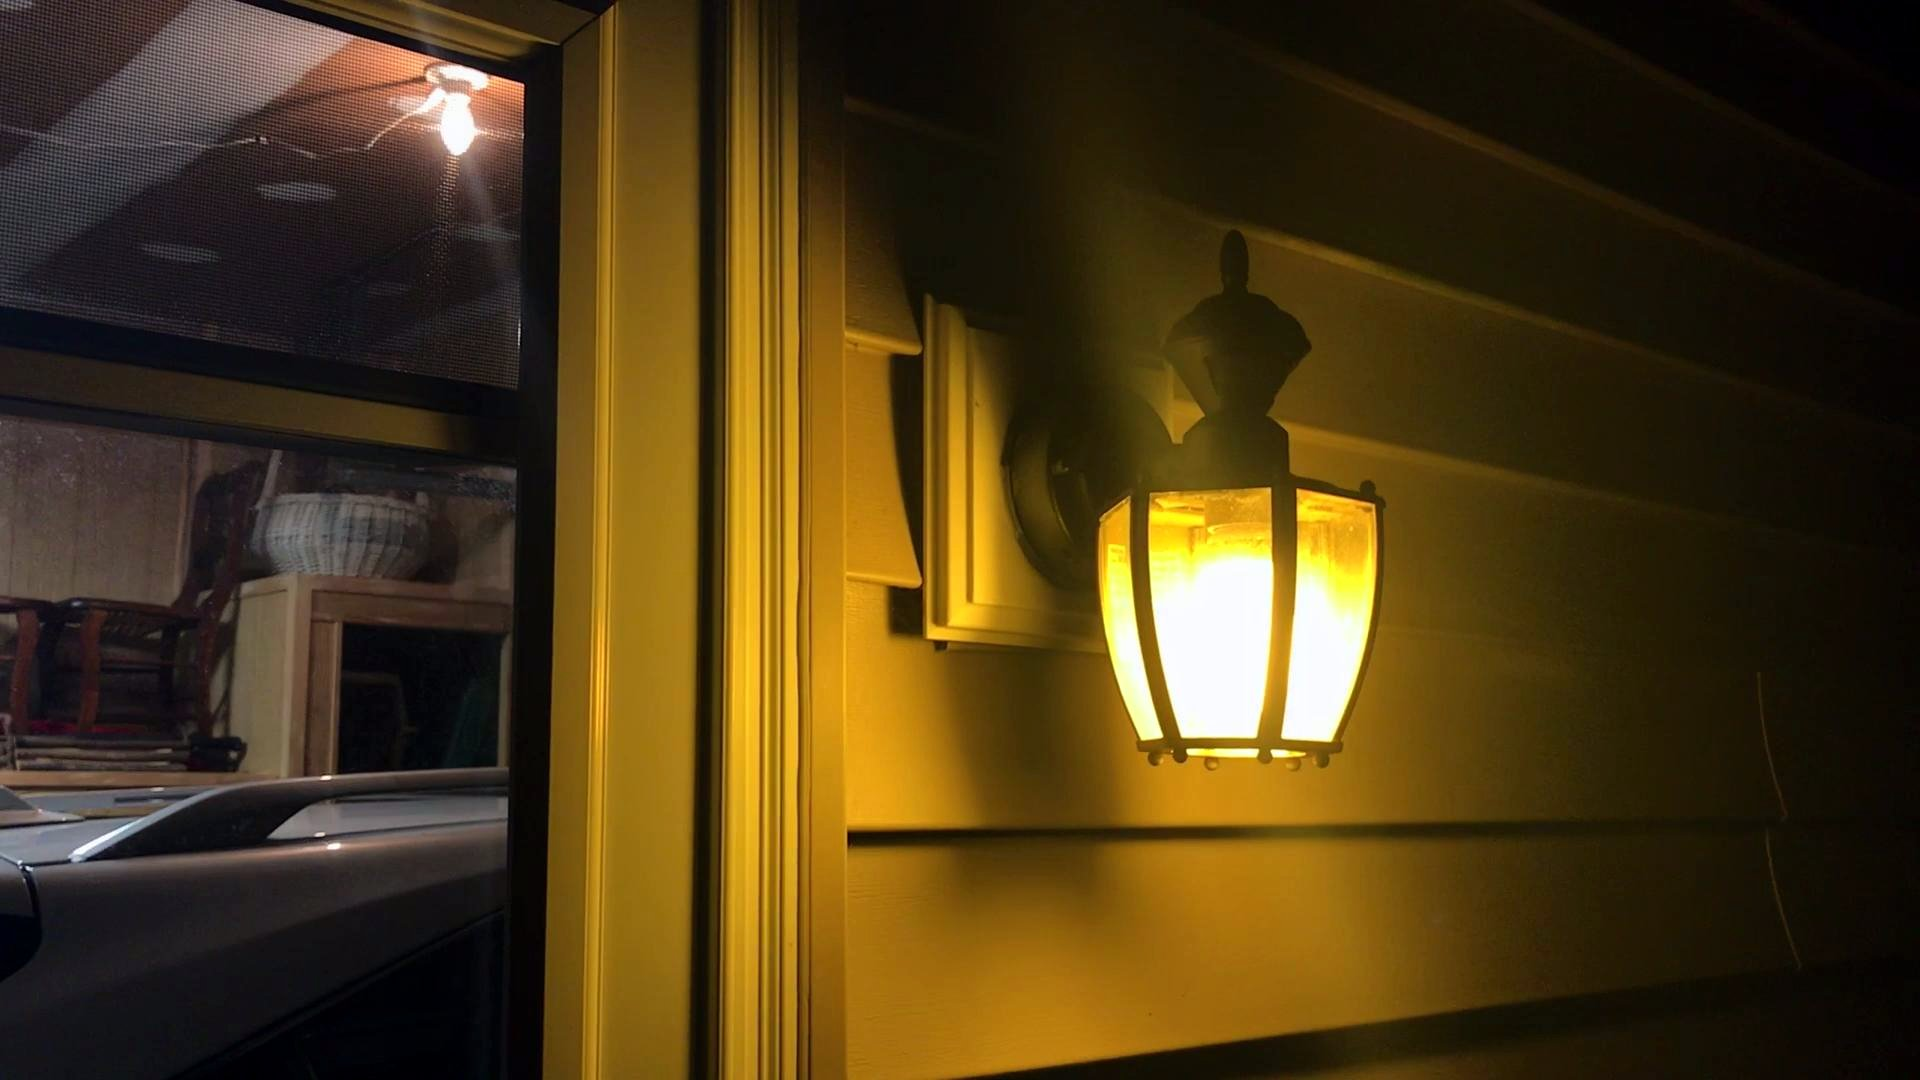 Electricians Bowie Lighting Outlets Garage and entryway